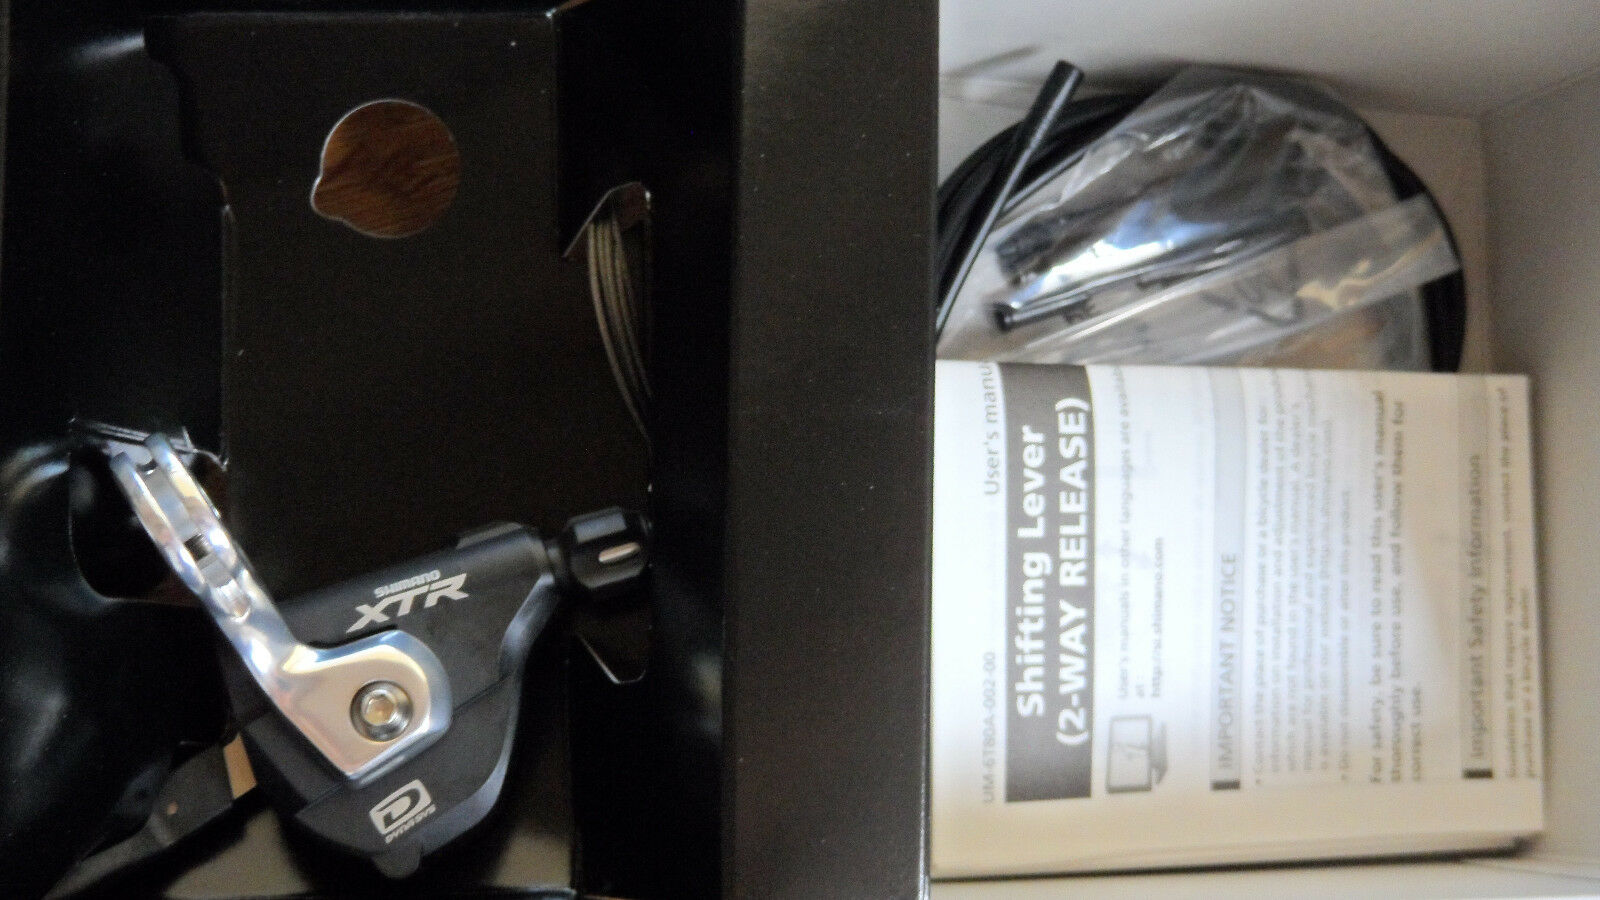 XTR SL-M980 10-SPD SHIMANO  SHIFTER FACTORY FRESH NEW IN BOX W  ALL ACCESSORIES  choices with low price